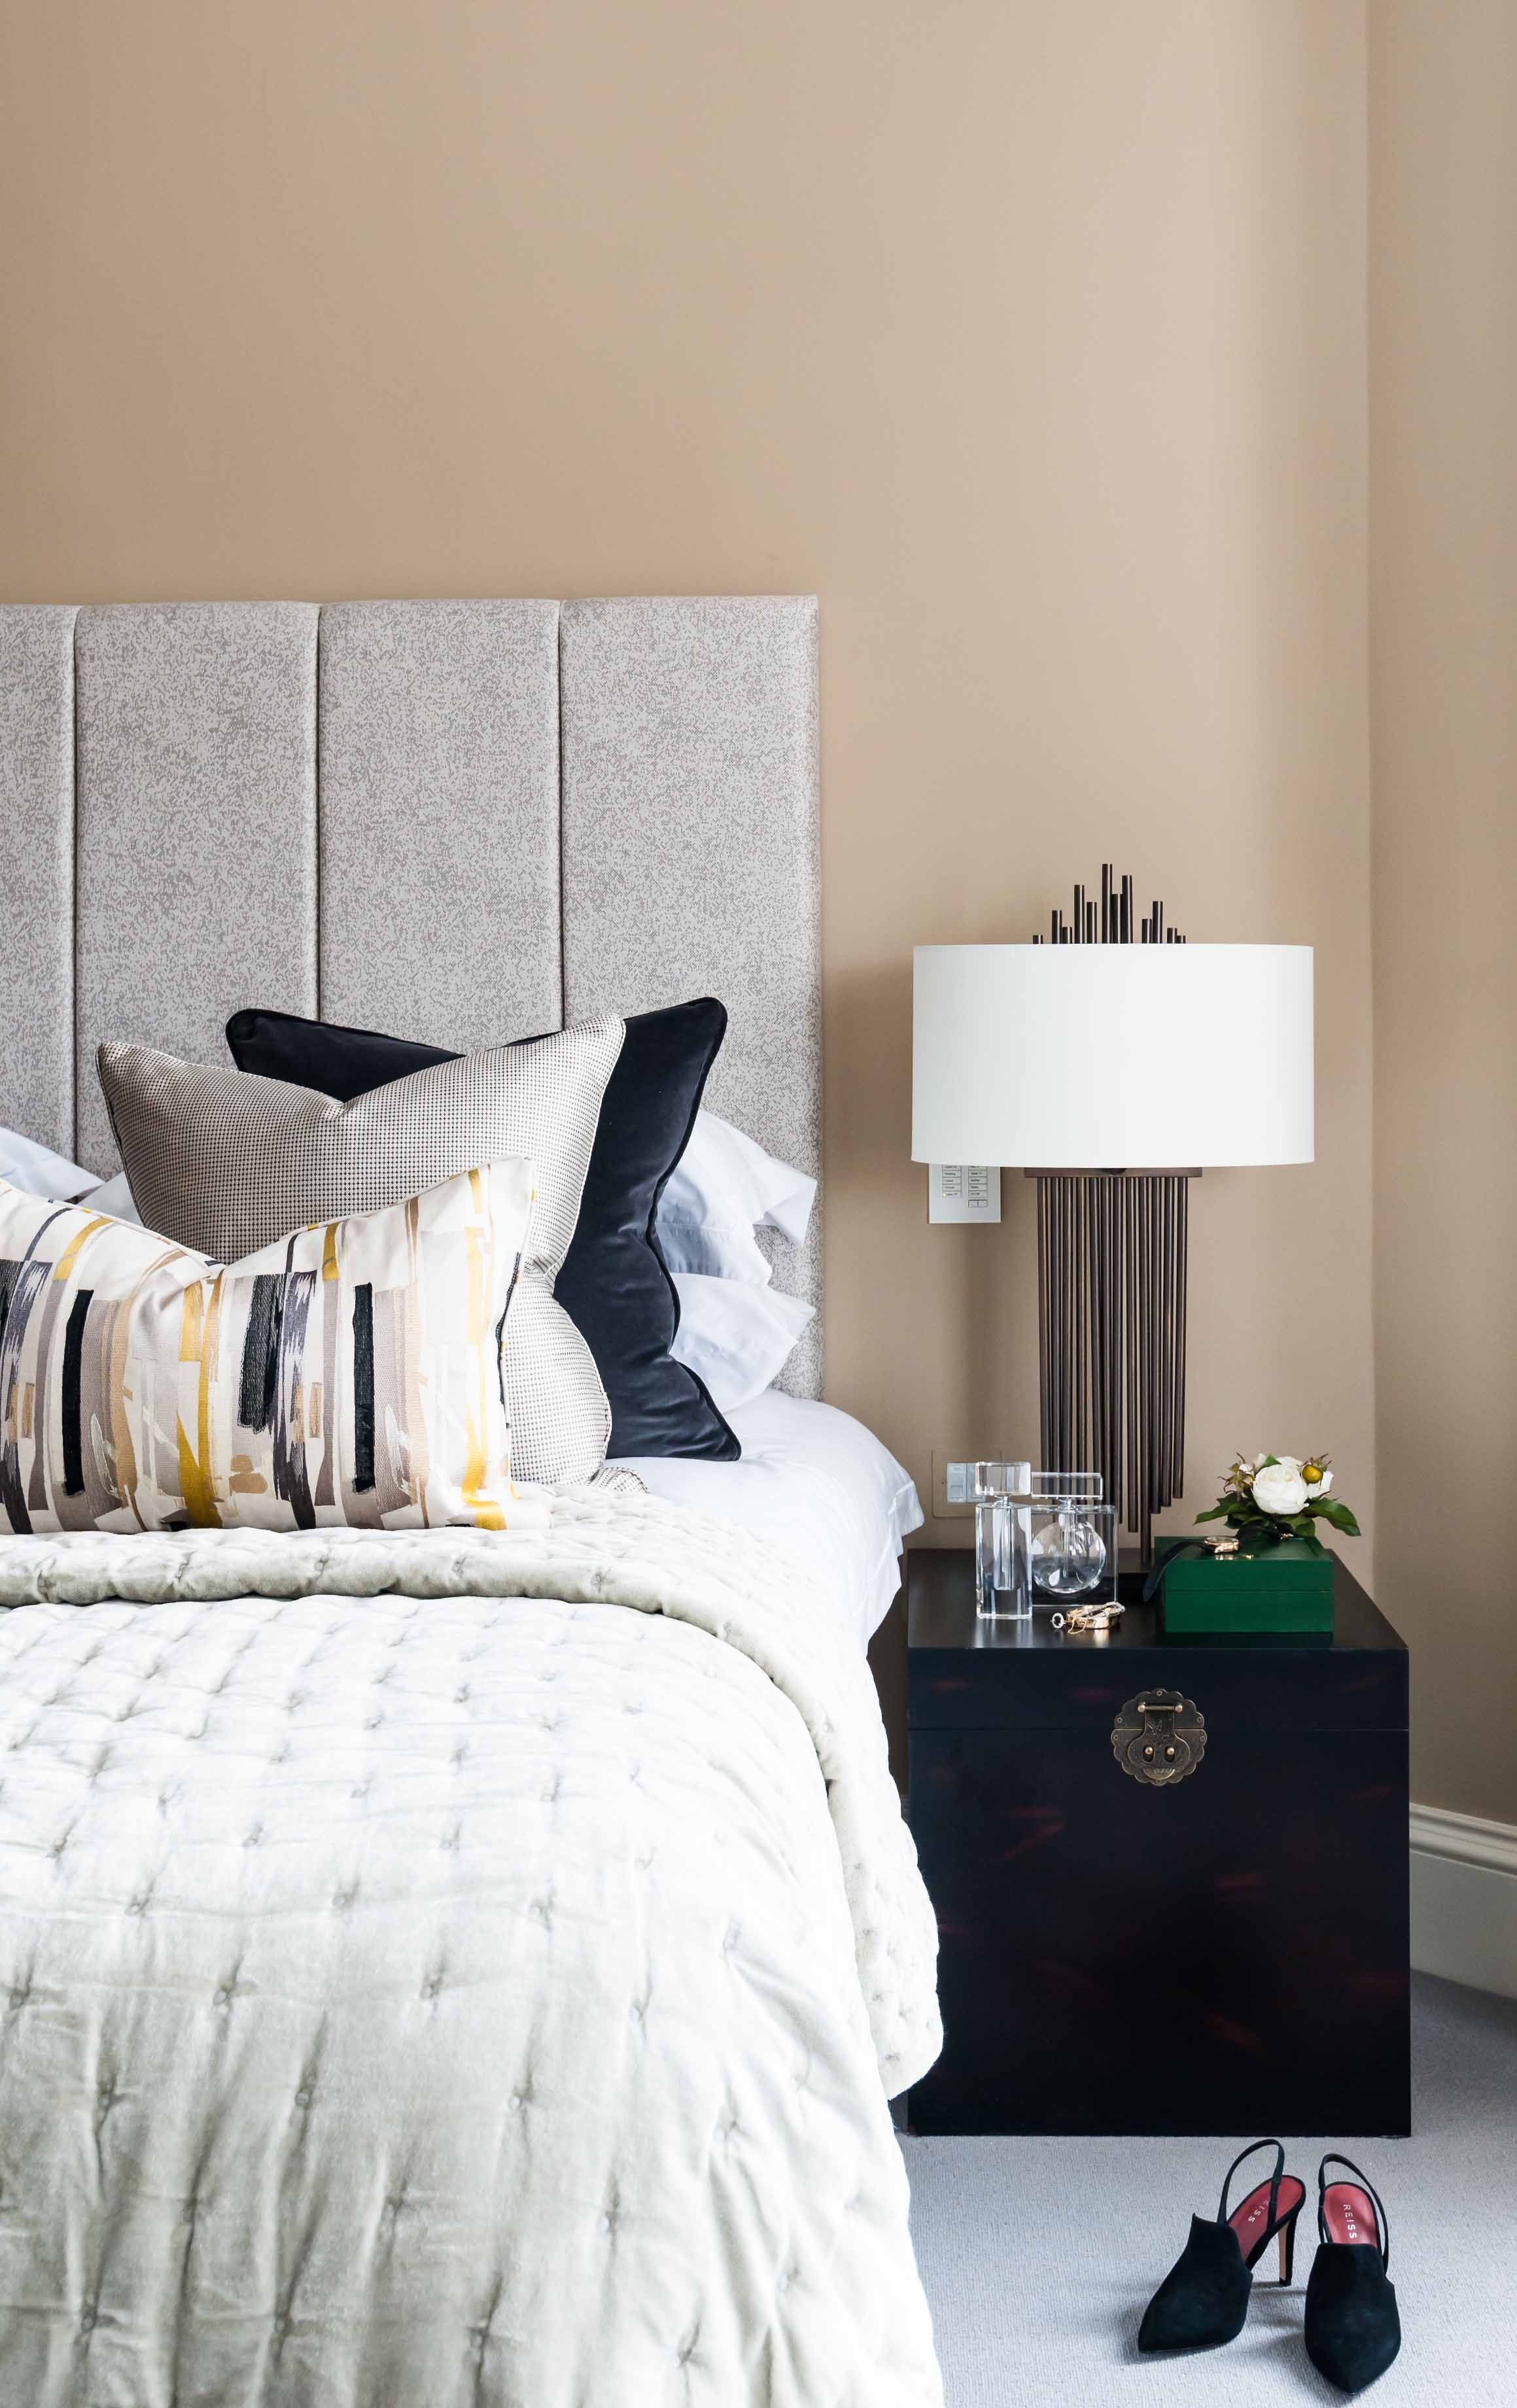 Pin by Milc on Milc Attention To Detail Closet bedroom